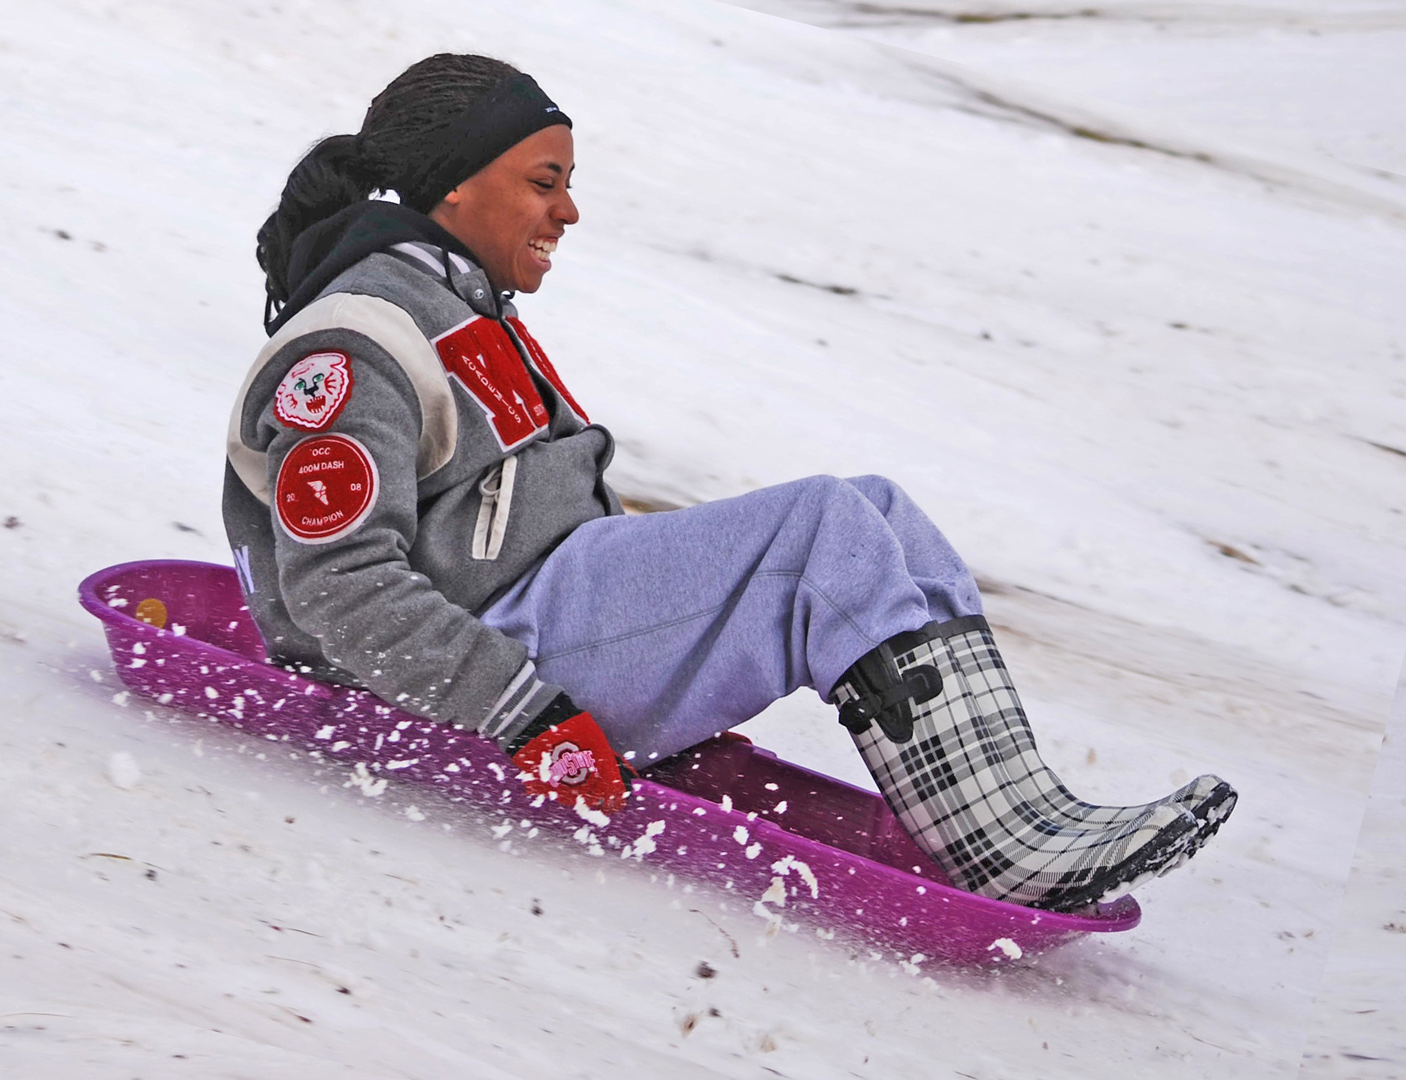 Sledder on hill at Sharon Woods